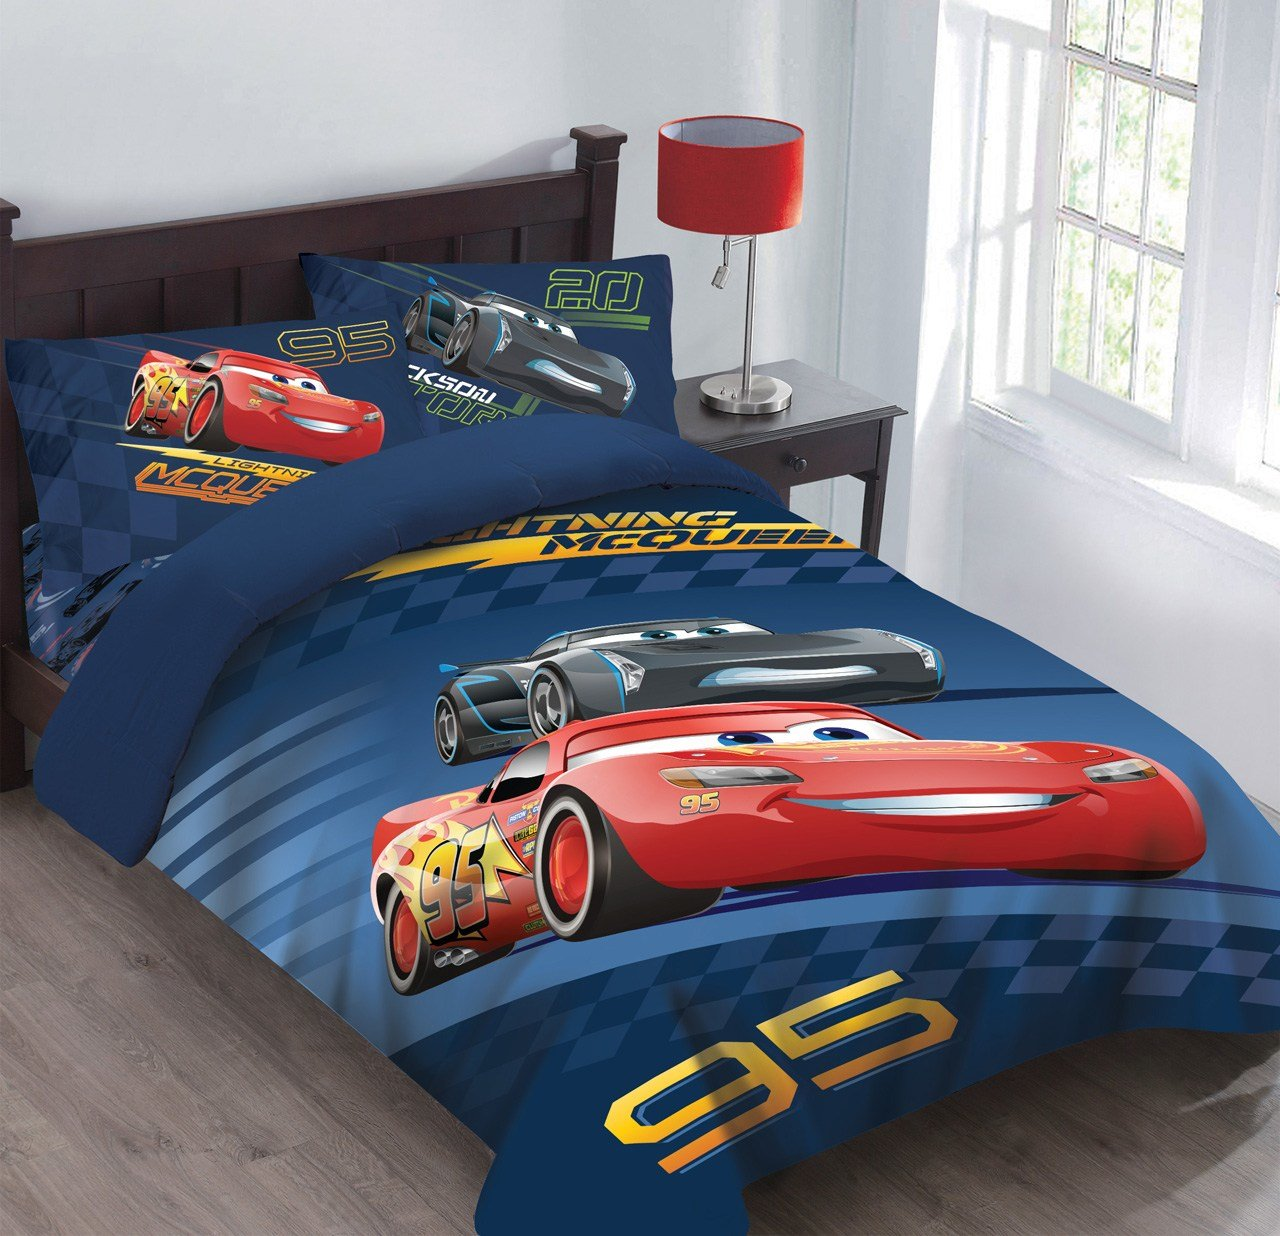 Best Disney Cars Velocity Bedding Comforter Set With Fitted Sheet With Pictures